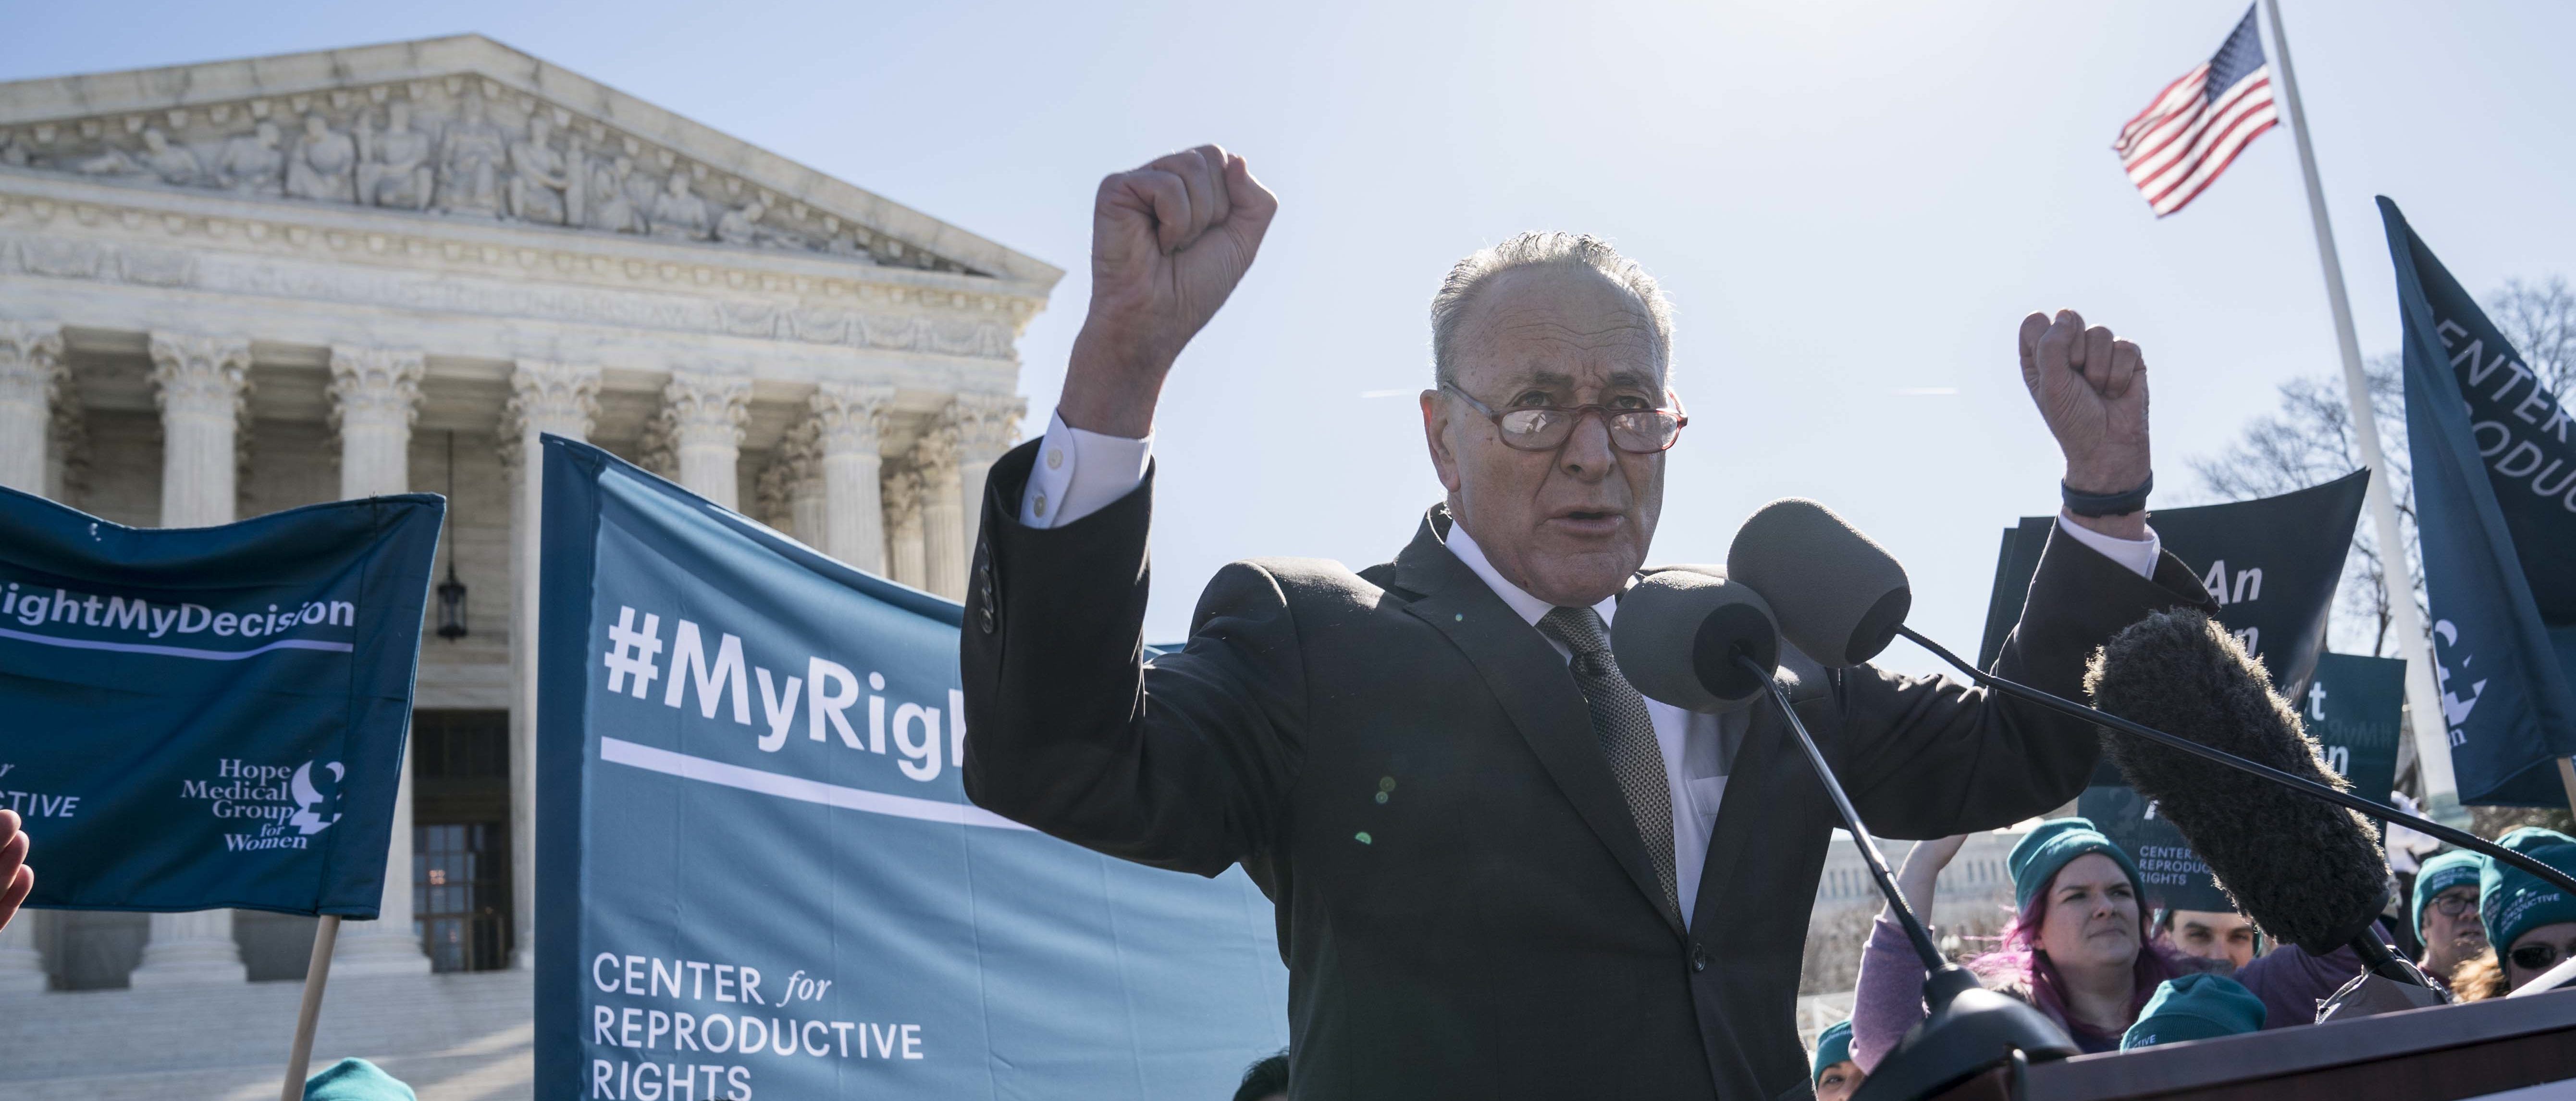 WASHINGTON, DC - MARCH 04: Senate Minority Leader Sen. Chuck Schumer (D-NY) speaks in an abortion rights rally outside of the Supreme Court as the justices hear oral arguments in the June Medical Services v. Russo case on March 4, 2020 in Washington, DC. The Louisiana abortion case is the first major abortion case to make it to the Supreme Court since Donald Trump became President. (Photo by Sarah Silbiger/Getty Images)